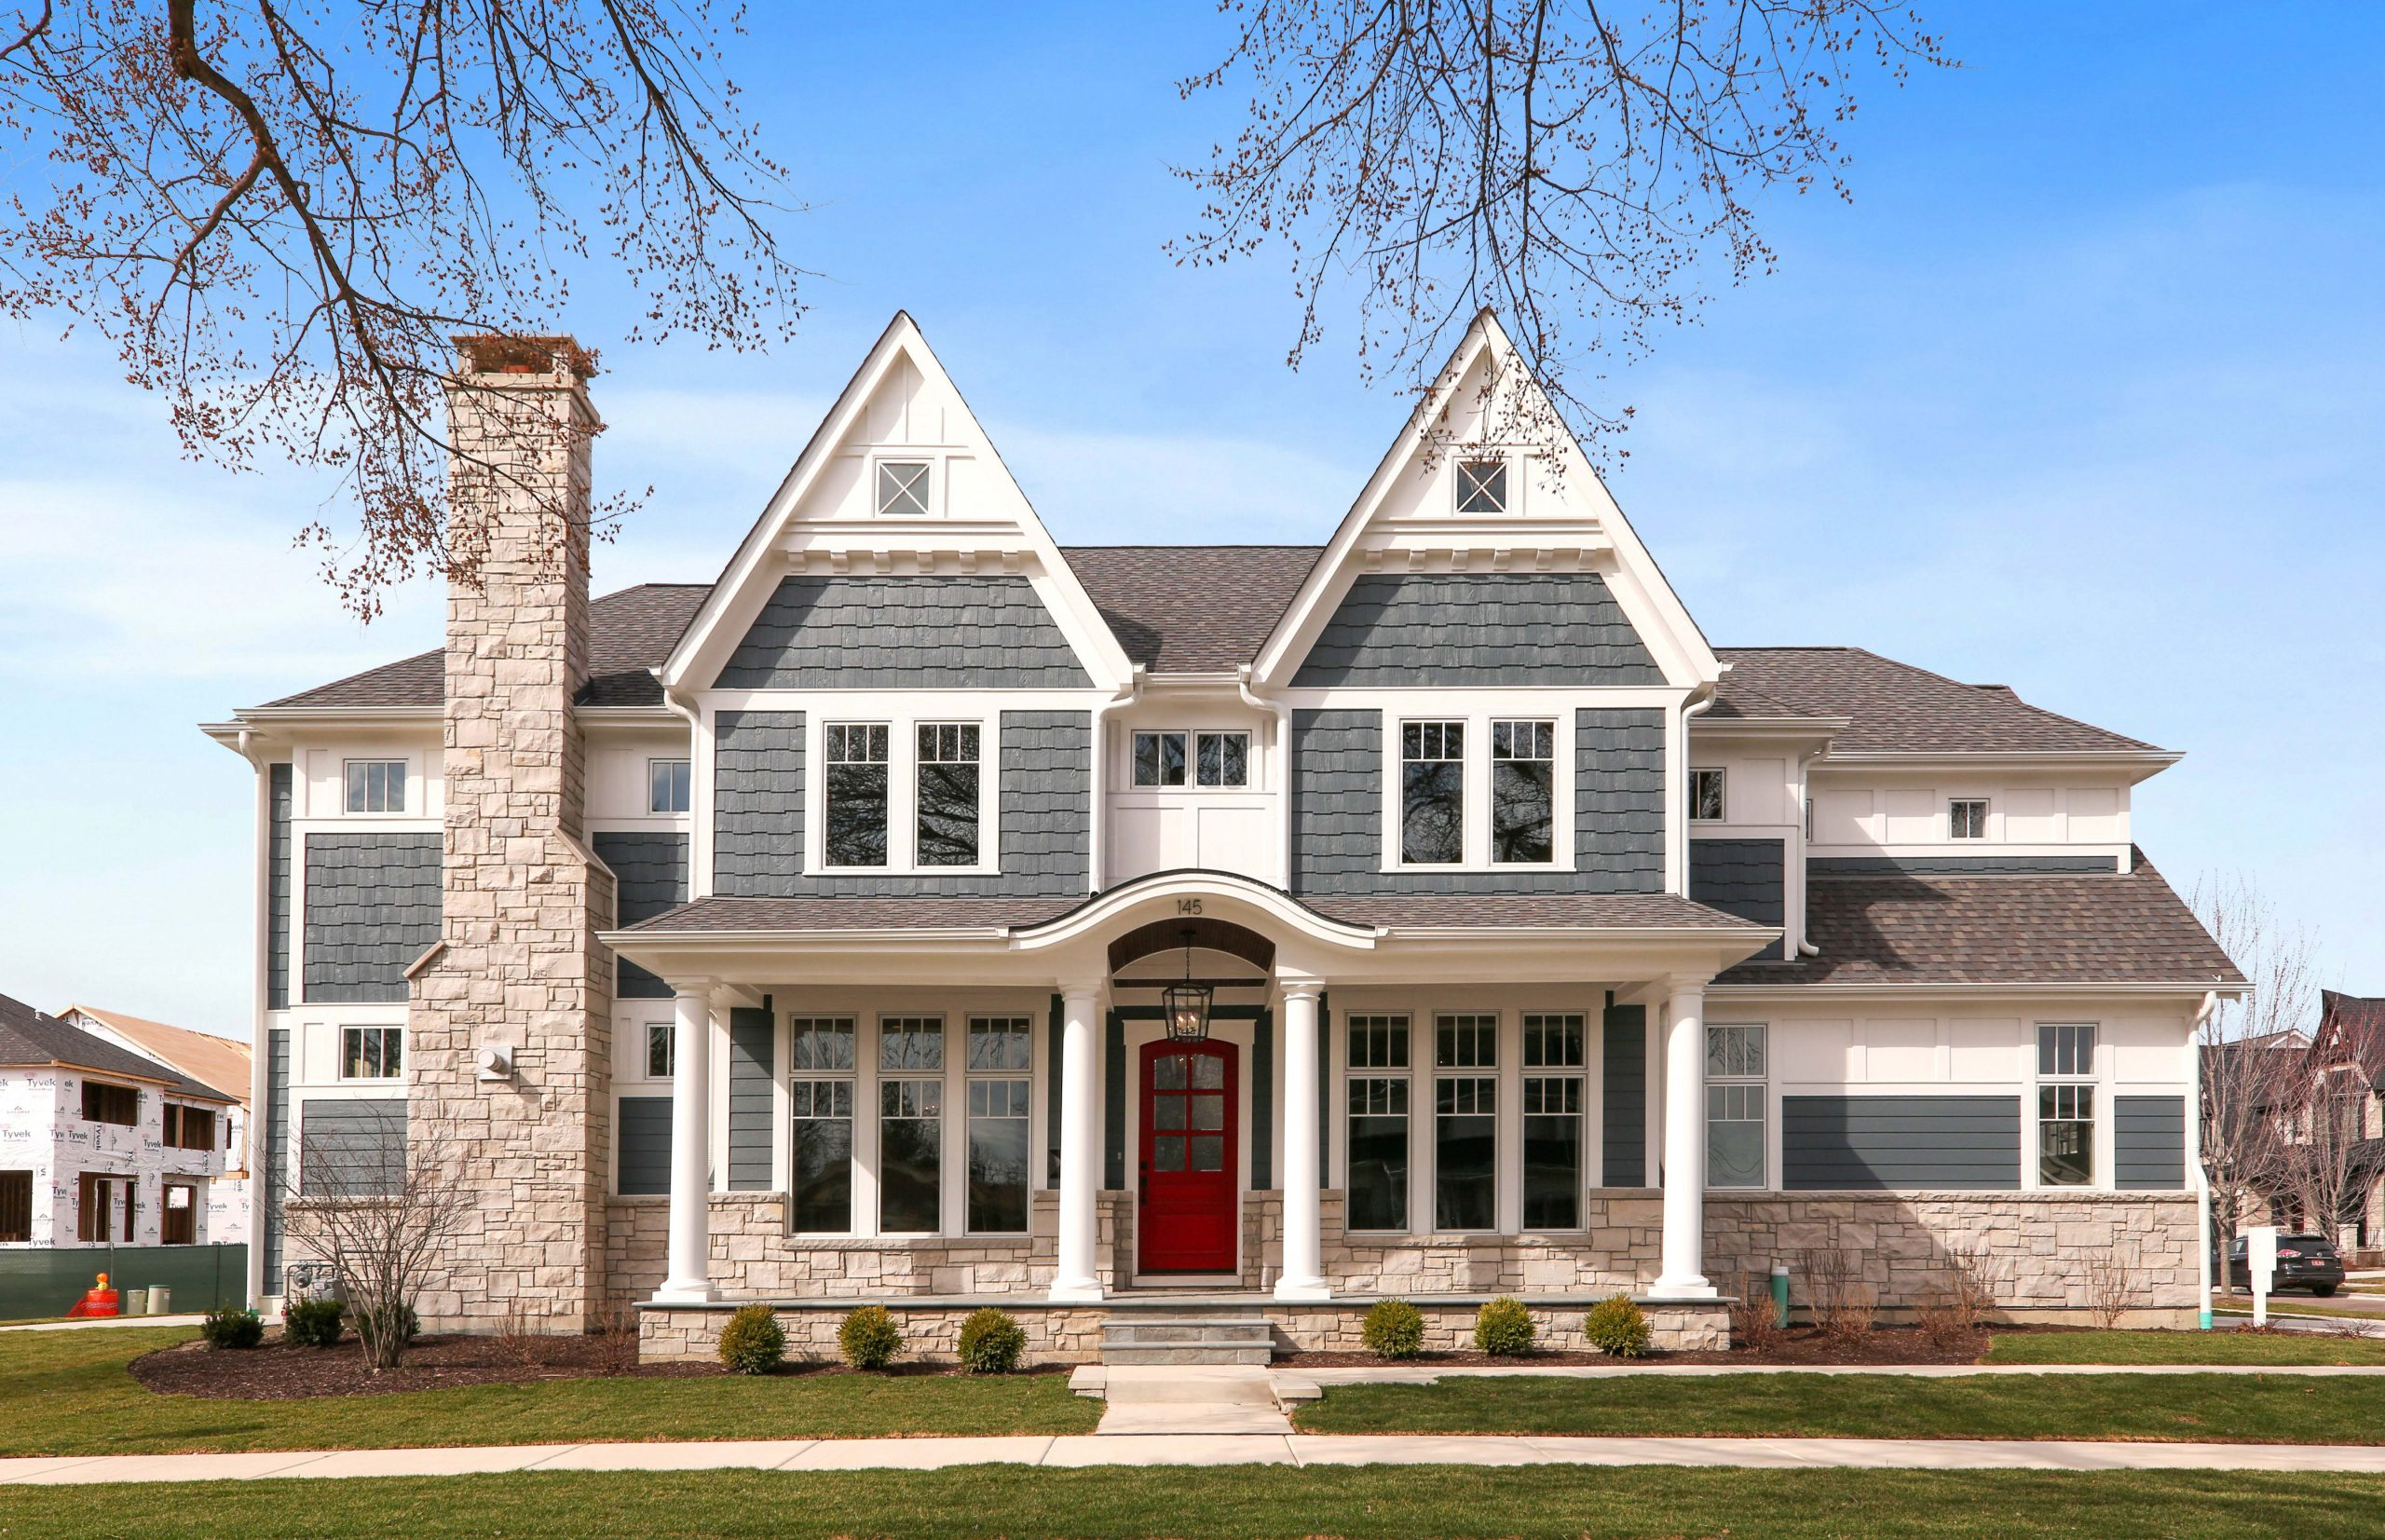 Blue Colored house. Cedar shake siding. Red front door with white trim and columns. Light colored stone veneer. Azek wall paneling.